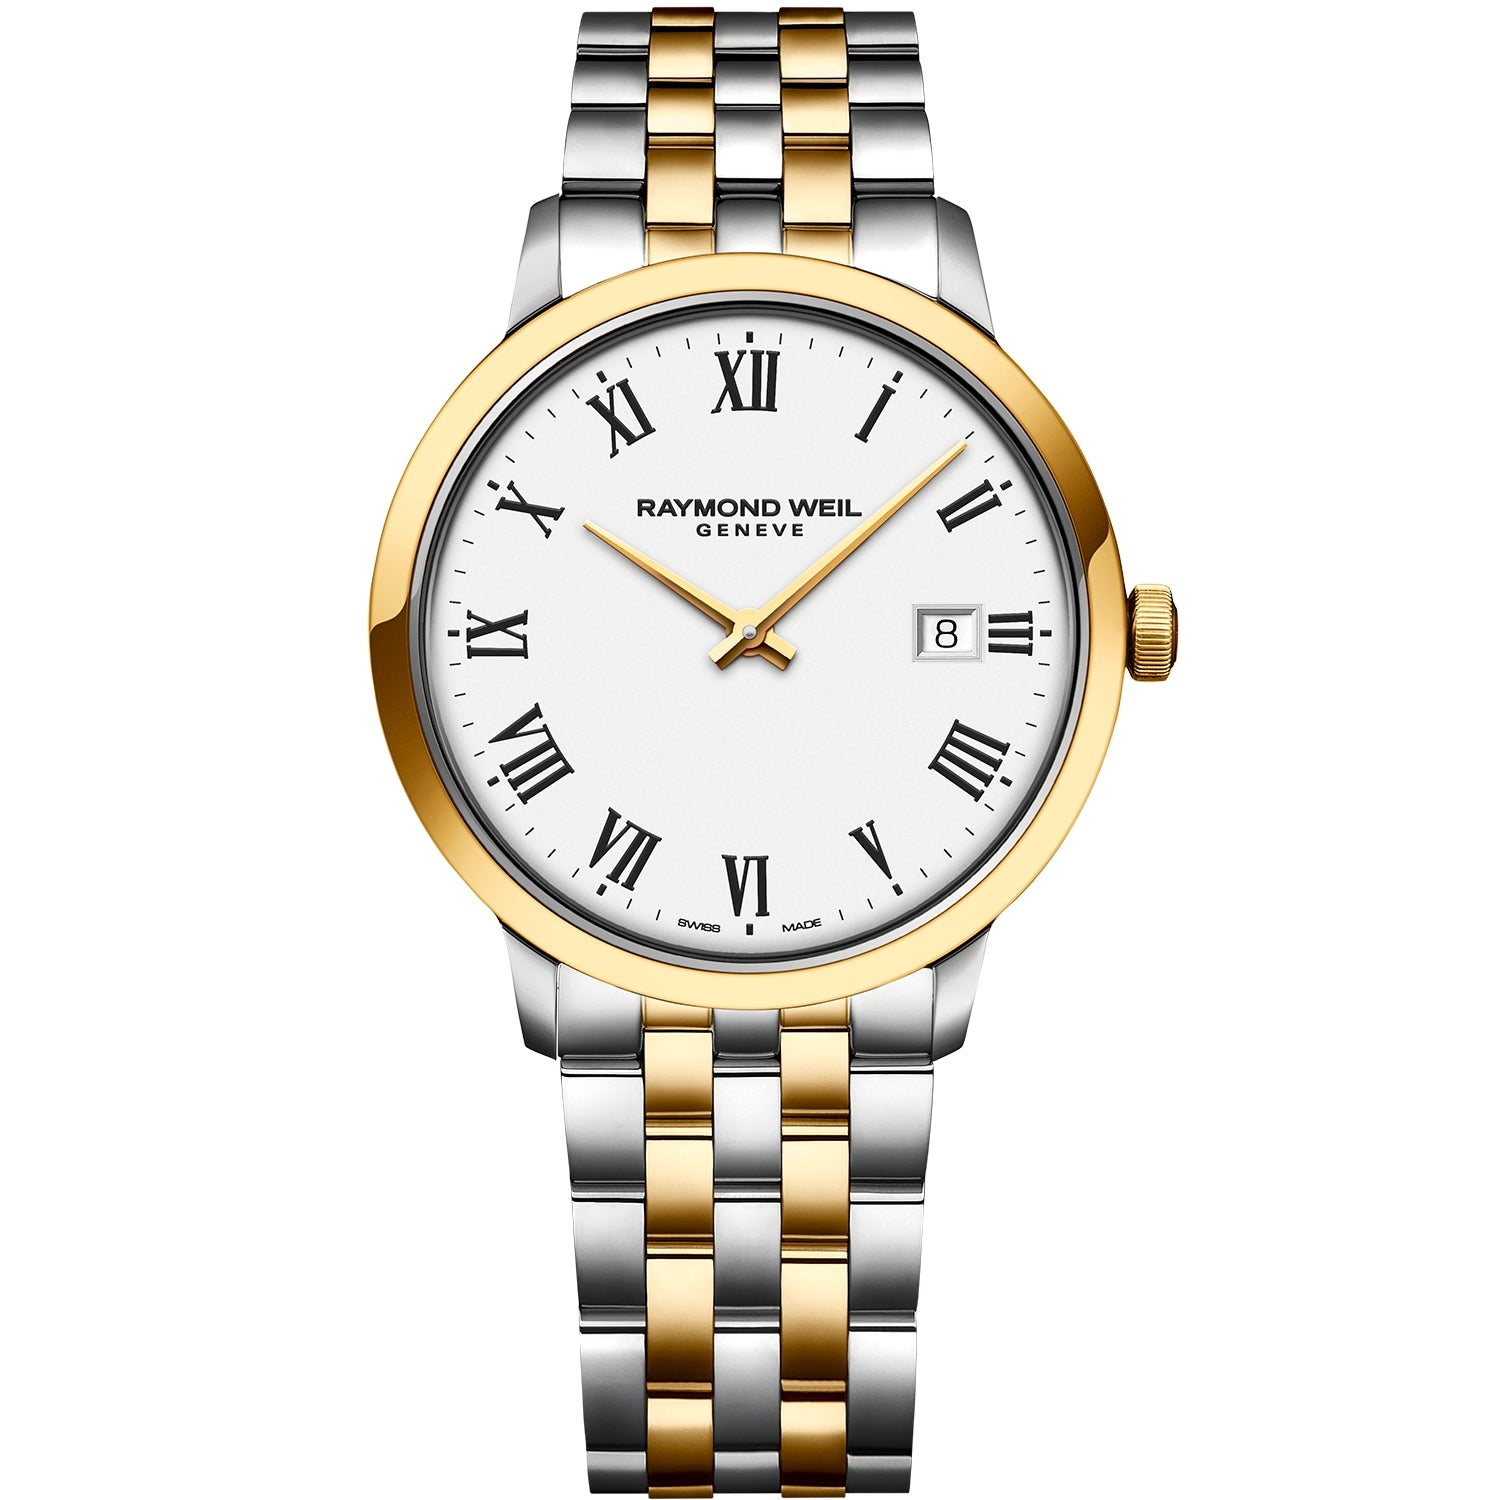 Toccata Men's Classic Two-tone White Dial Quartz Watch 5485-STP-00300